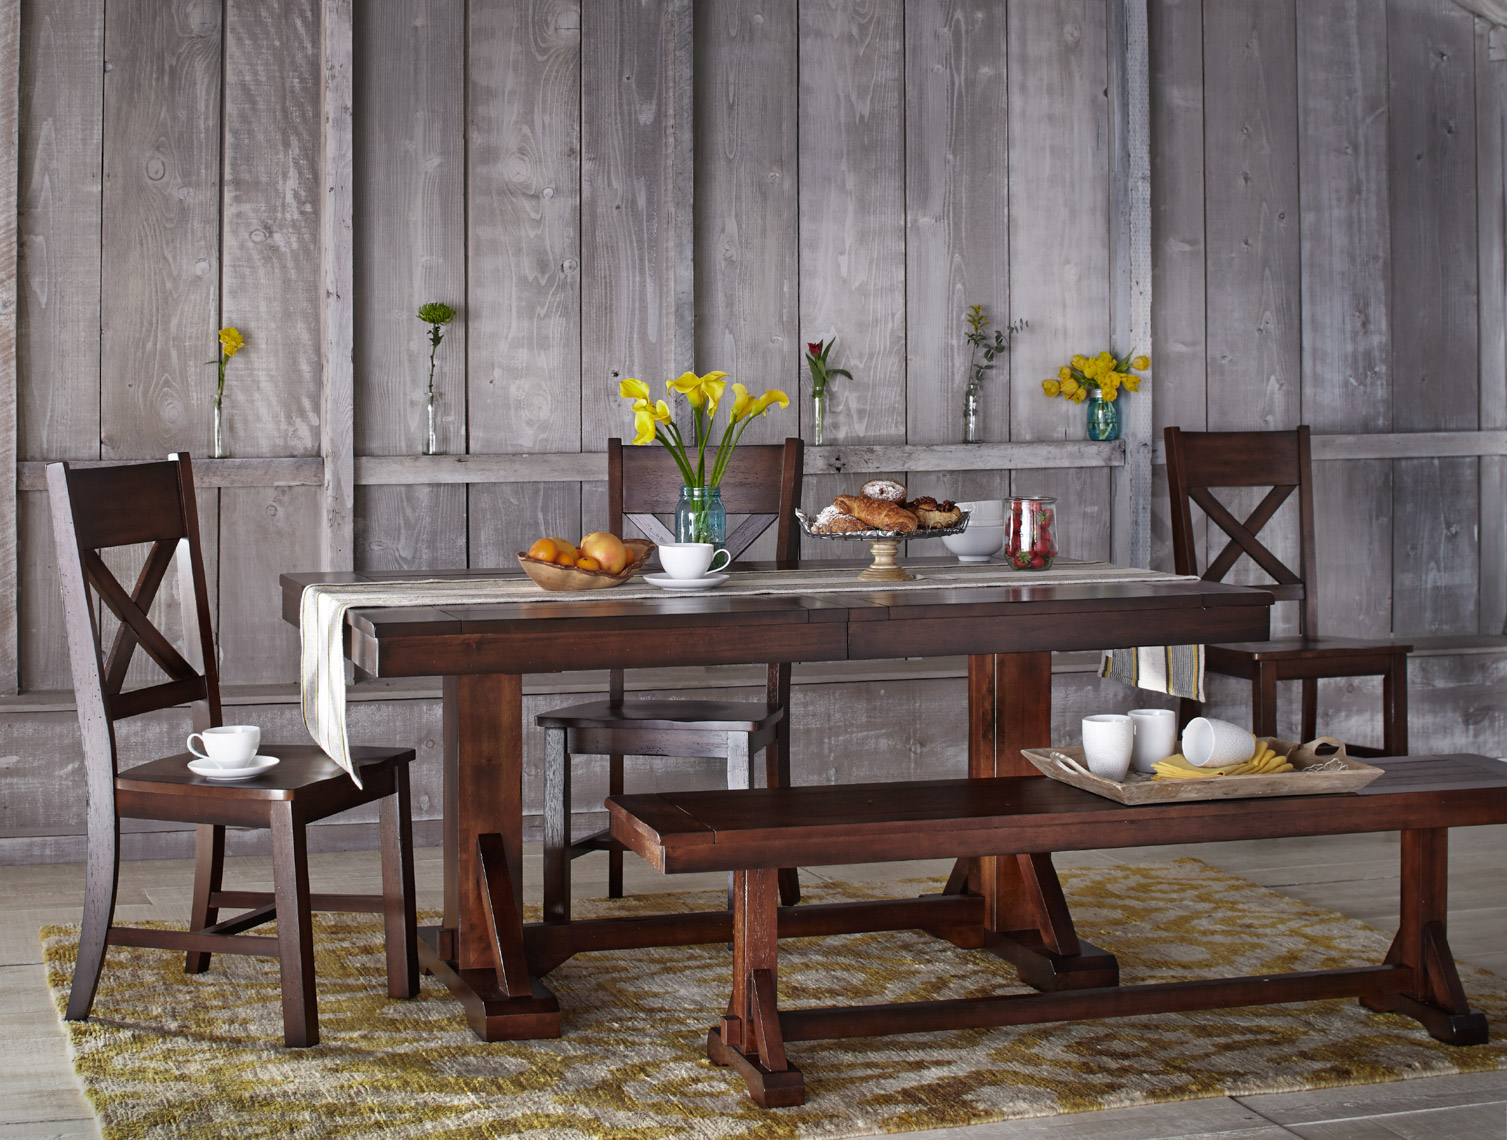 wooden dining table setup and flower decorations on barn door San Francisco interior photographer